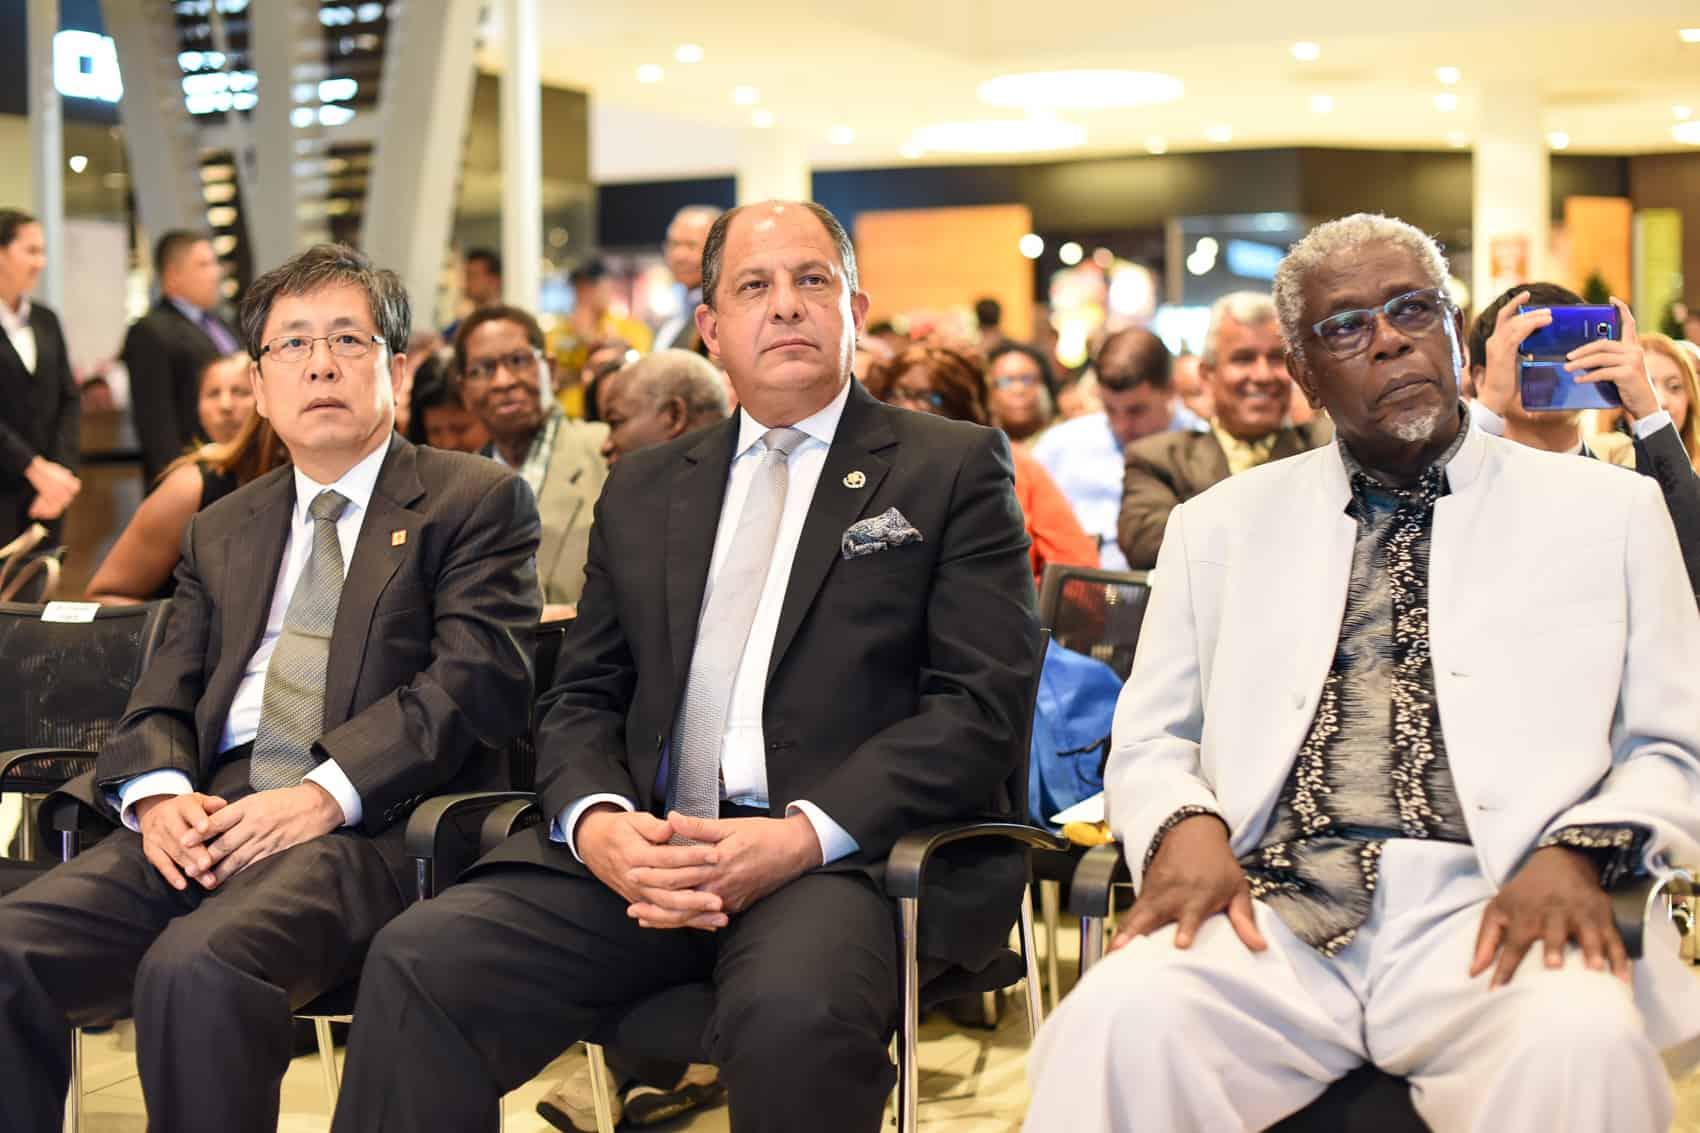 From left Chinese ambassador Song Yanbin, president Luis Guillermo Solis and first Afro-Costa Rican writer Quince Duncan at the Inauguration of the African Diaspora Festival at the Plaza Lincoln Mall in Moravia, October 22.